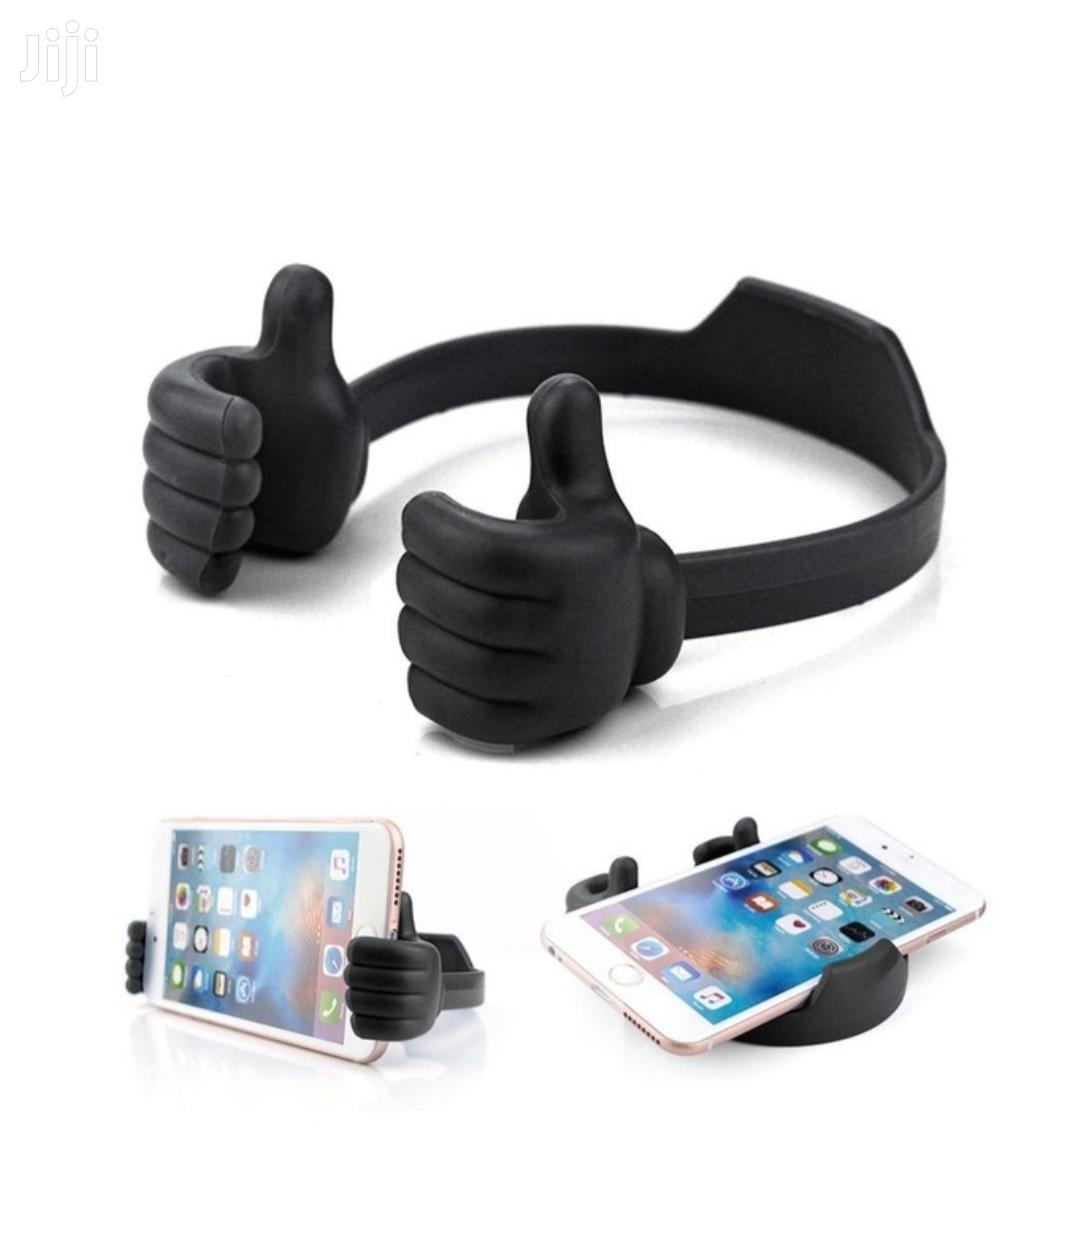 Black Flexible Adjustable Mobile Phone Thumb Grip Stand